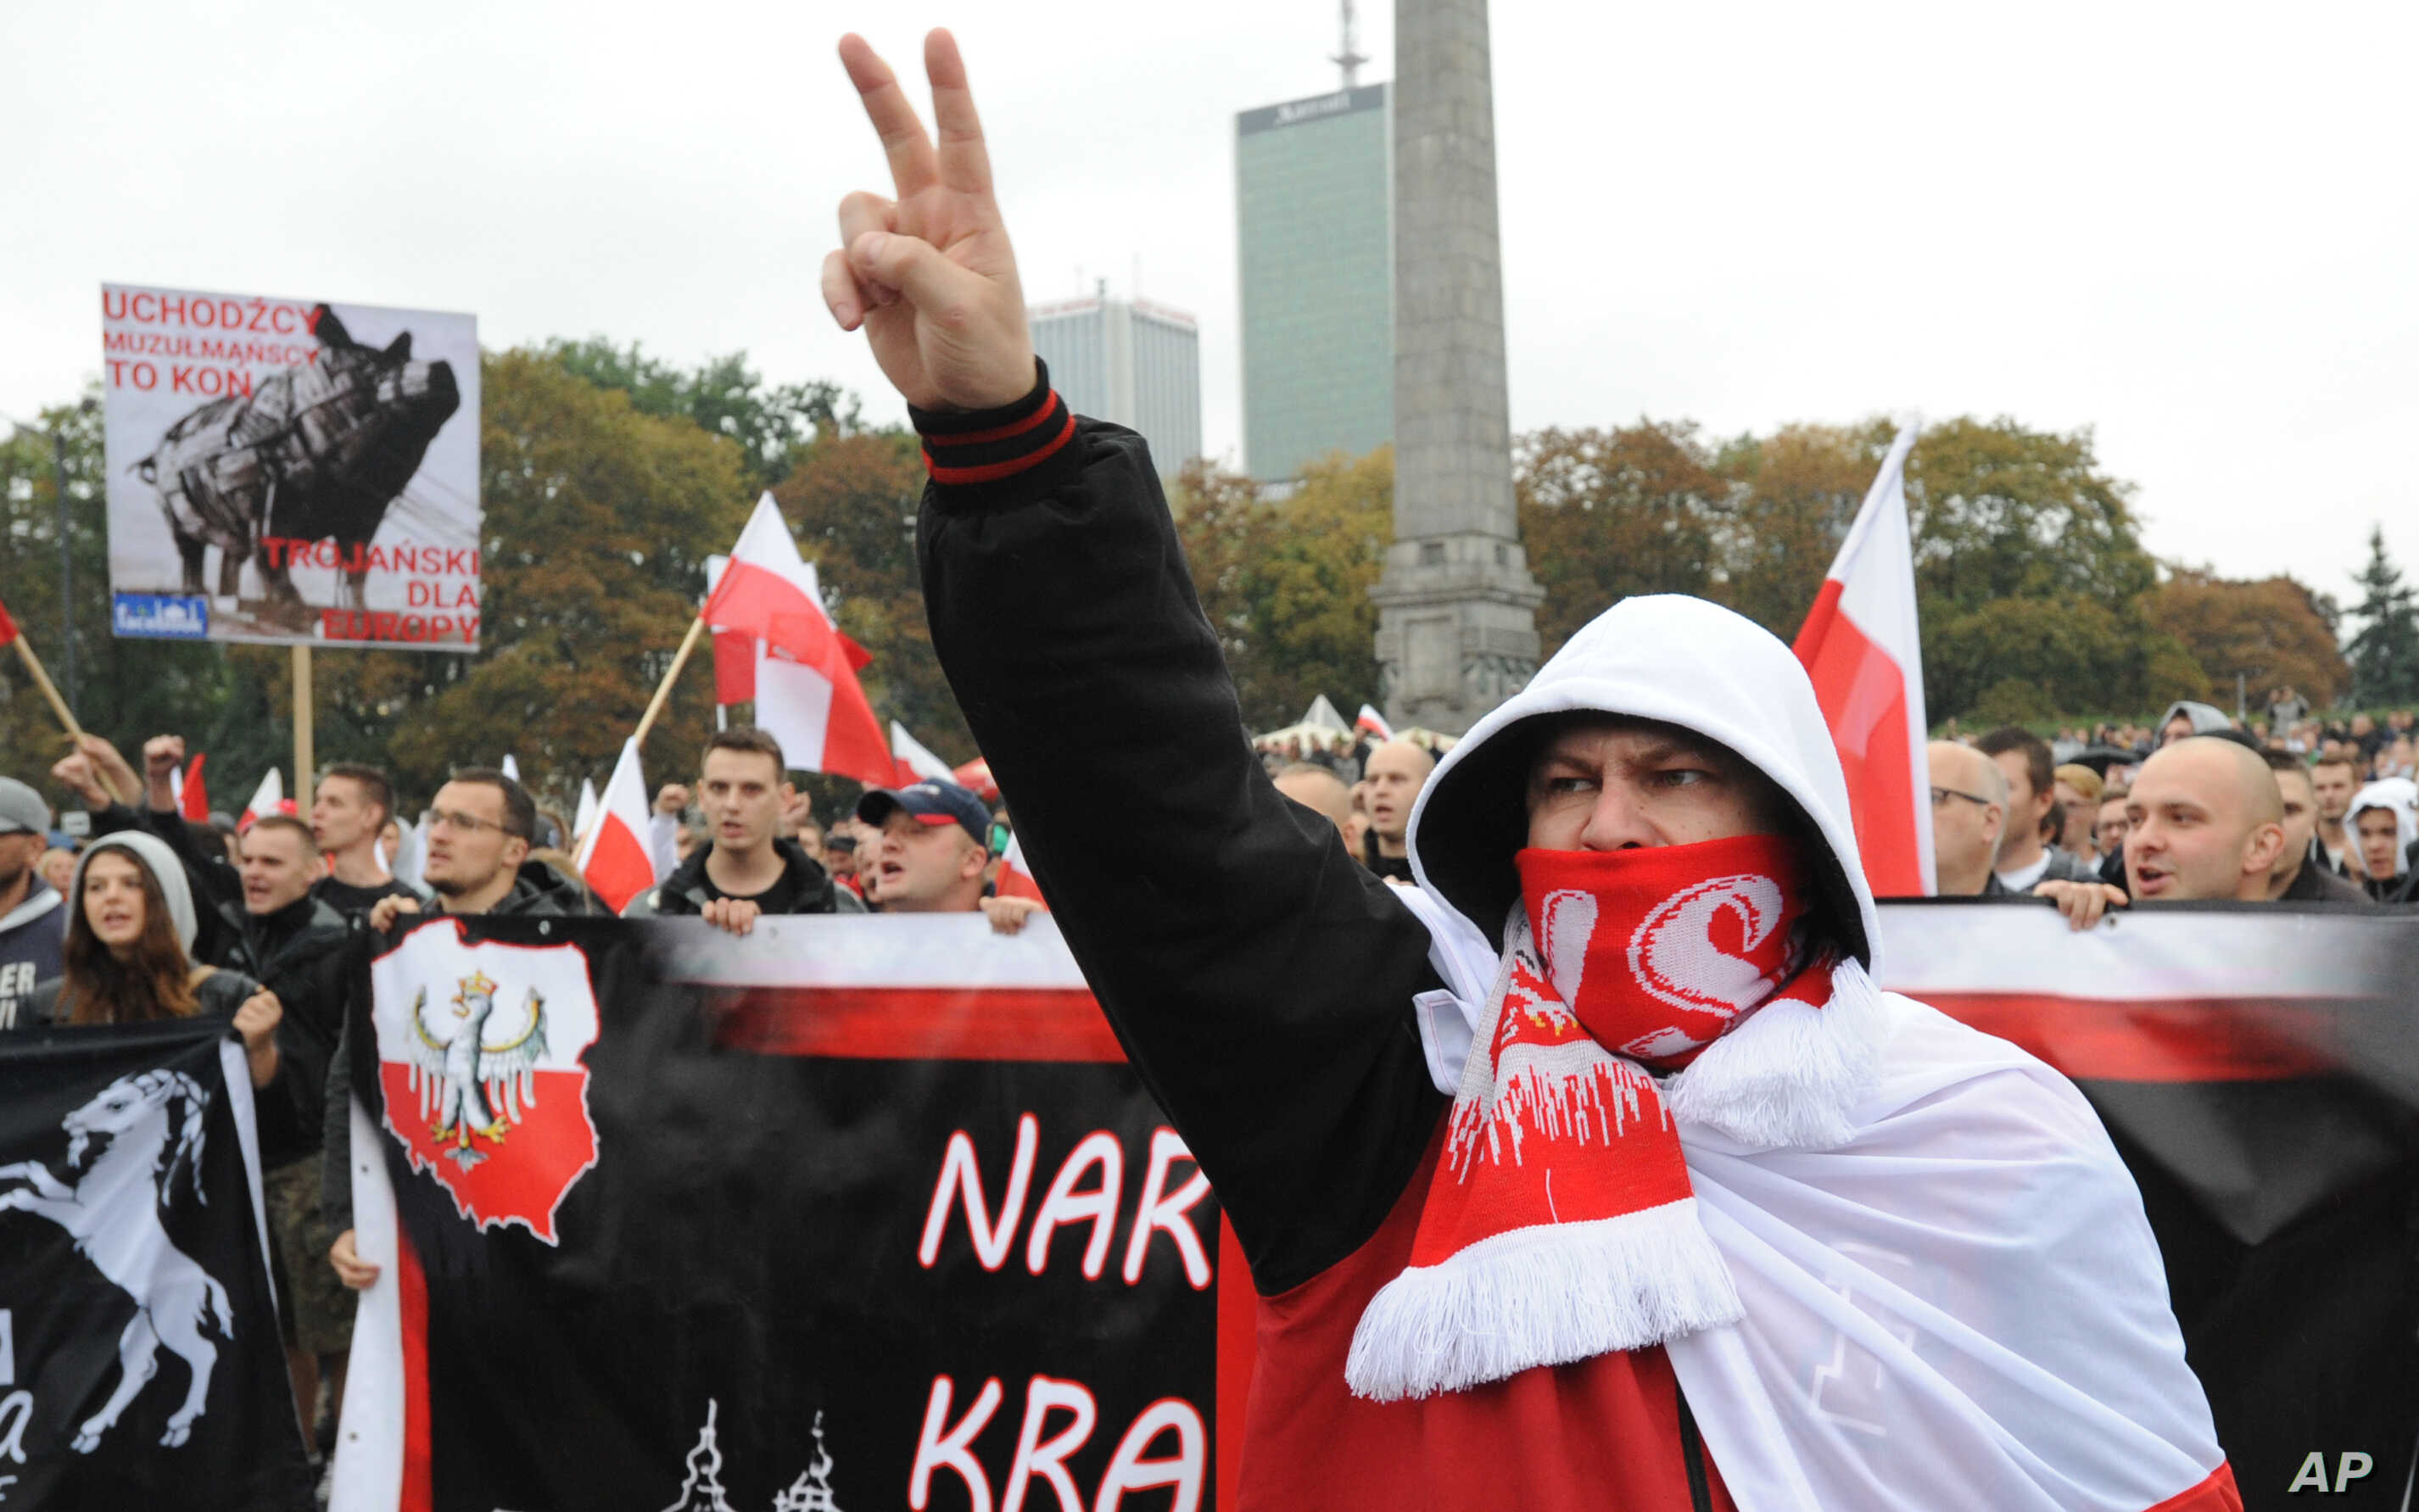 Protesters shout anti-migrant slogans as several thousand right-wing nationalists march through downtown Warsaw, demonstrating against EU-proposed quotas for Poland to spread the human tide of refugees around Europe, Sept. 12, 2015.